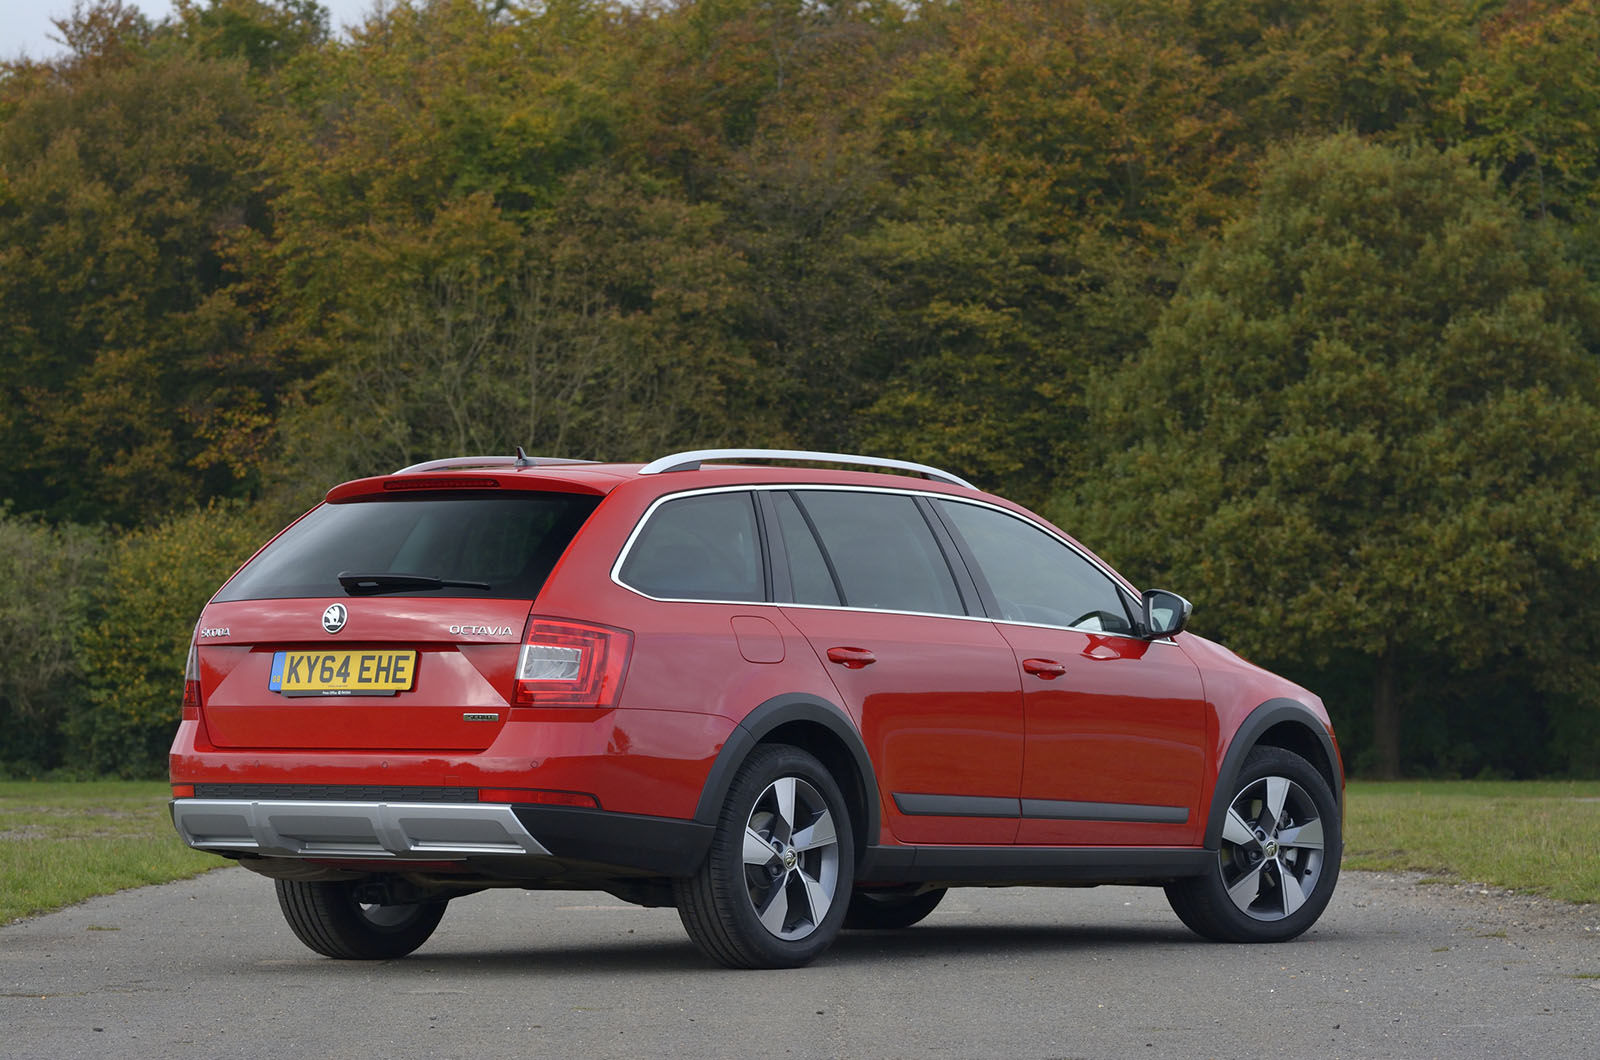 The Octavia Scout gets a raised ride height and rugged body cladding